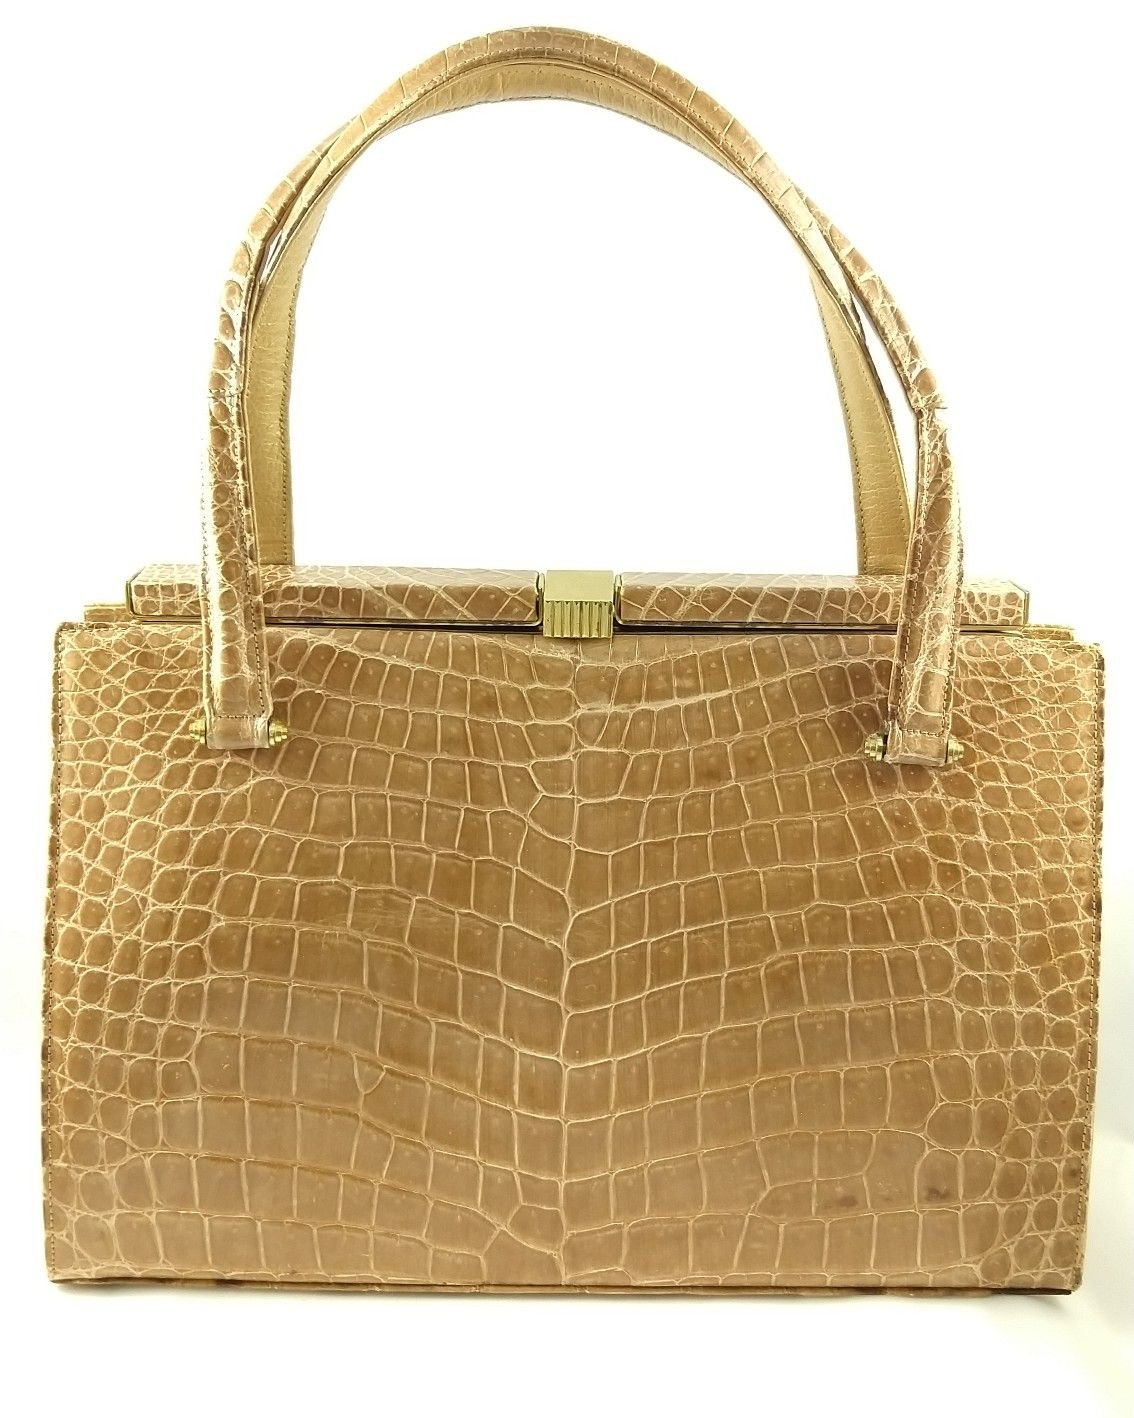 7c8032c0d9d4 Beautiful Lucille de Paris handbag in very good vintage condition! With  taupe crocodile skin and